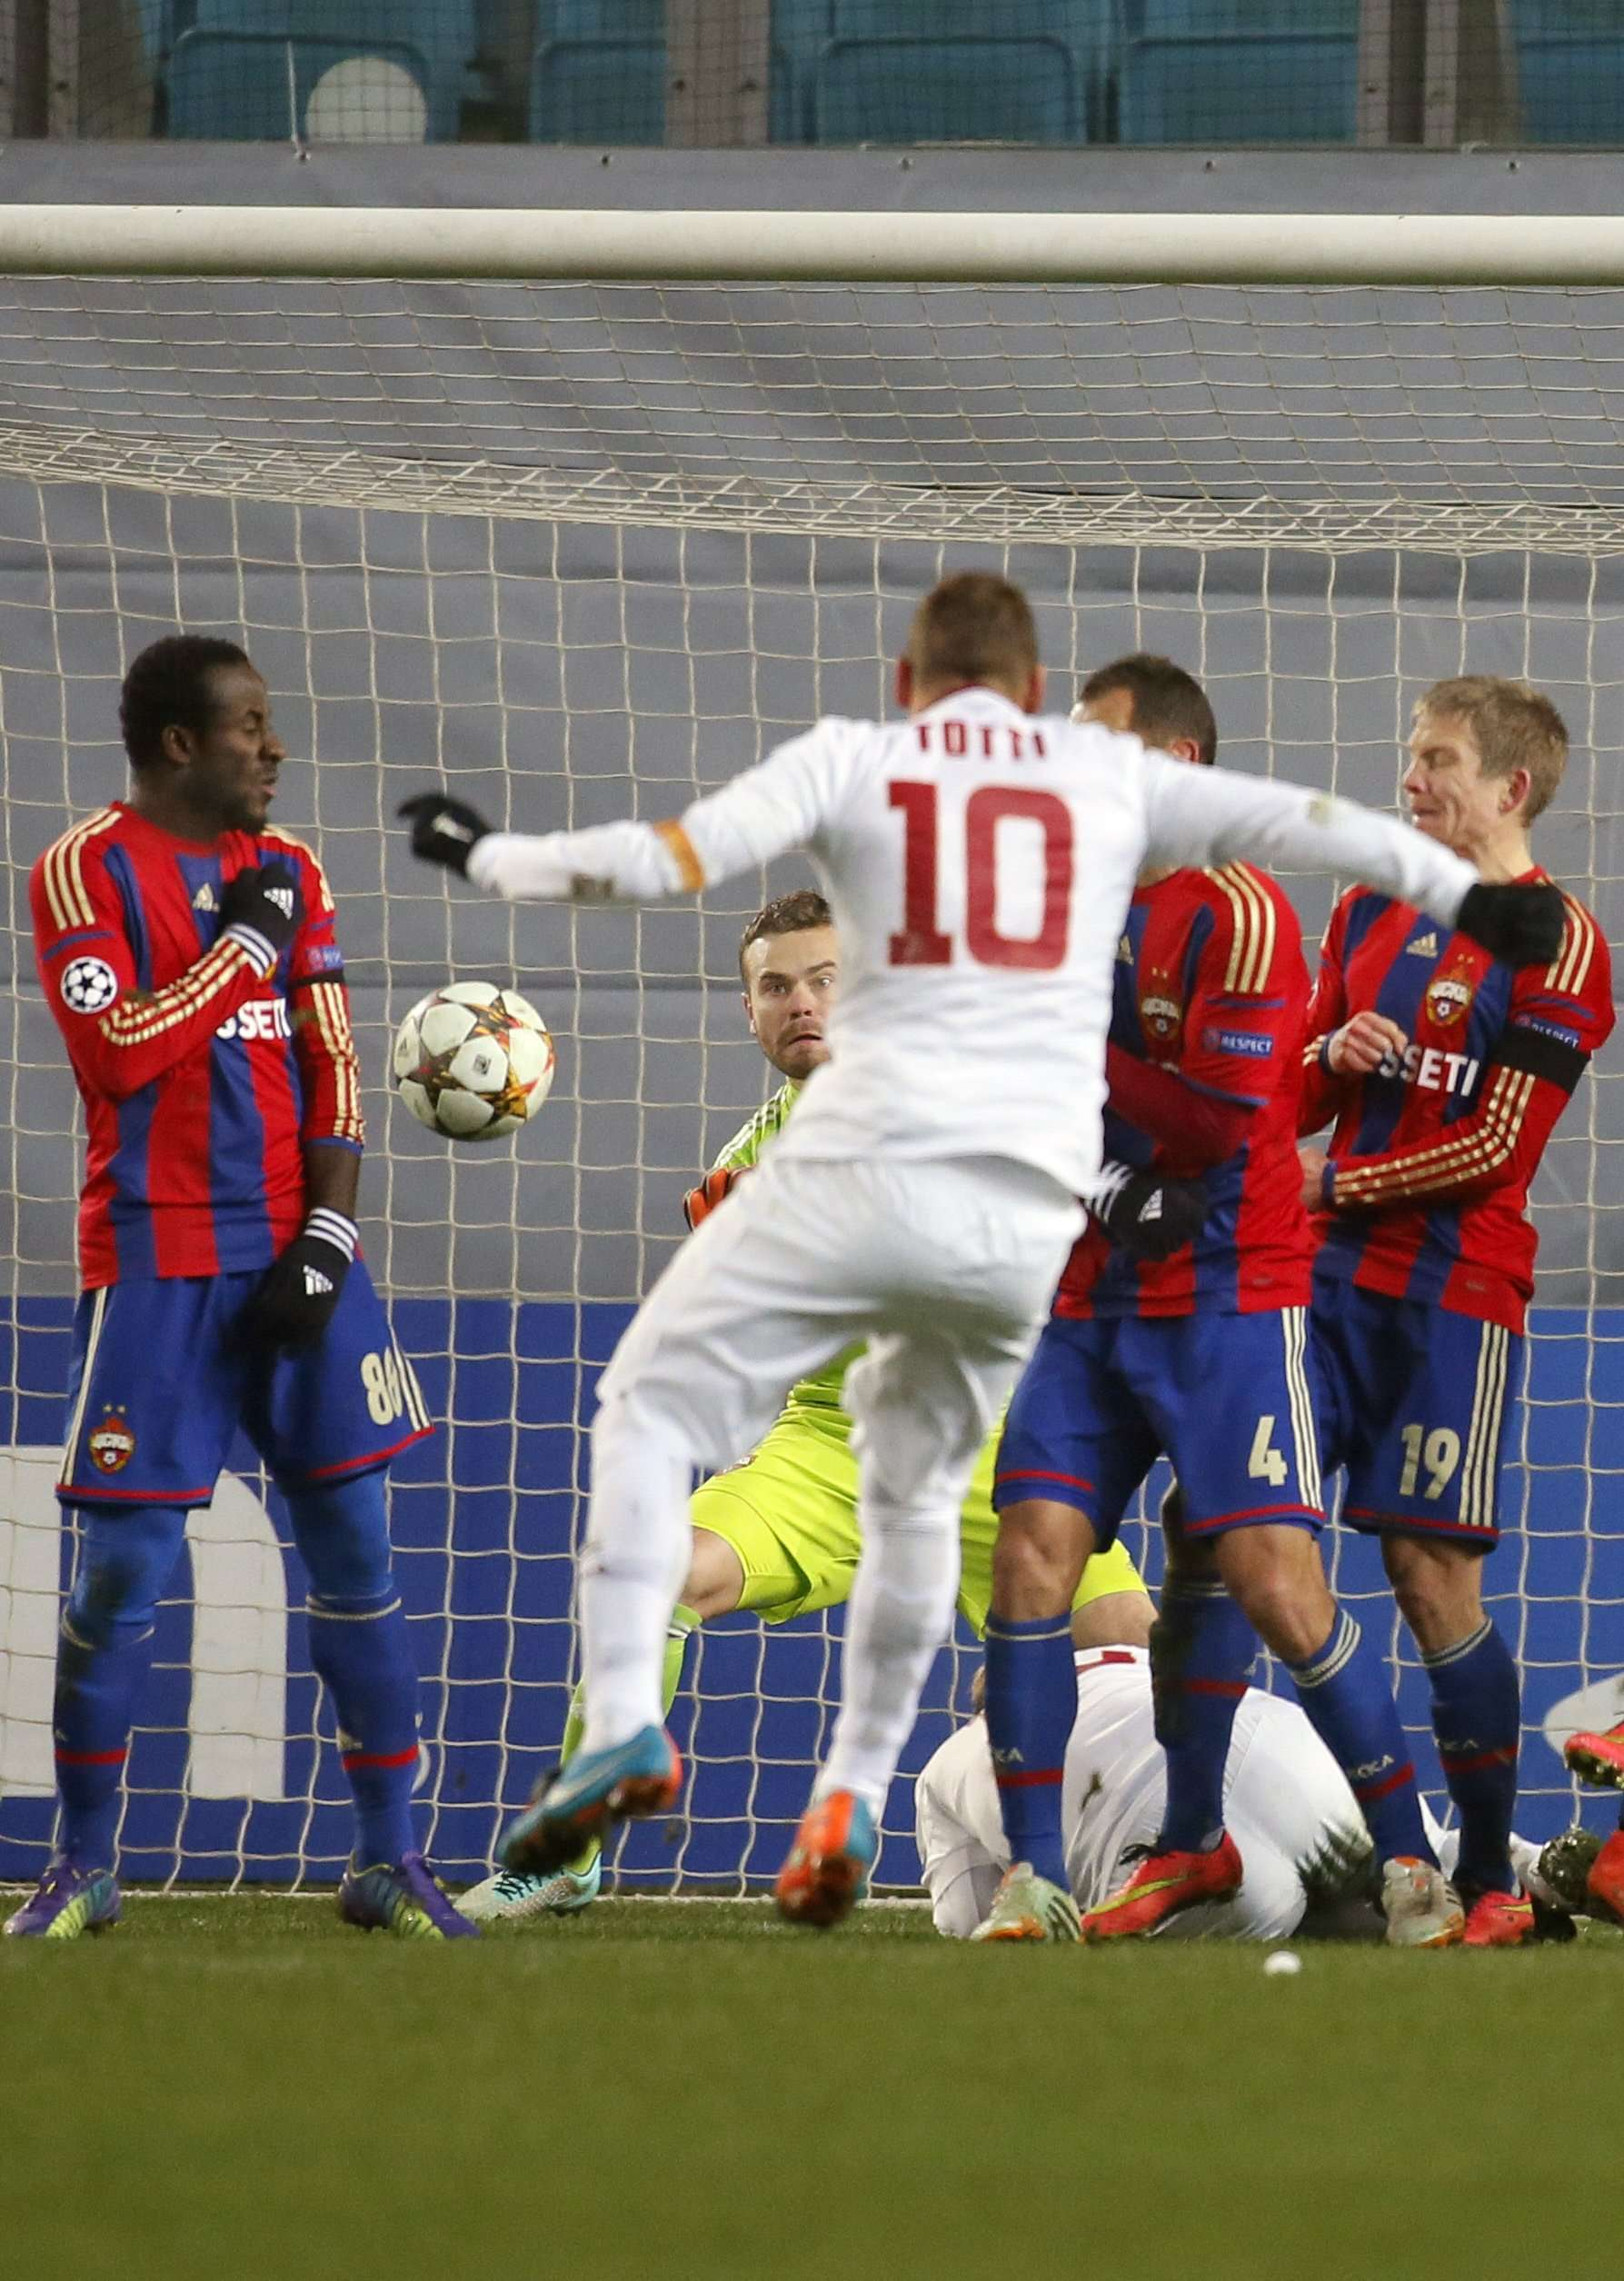 CSKA Moscow's goalkeeper Igor Akinfeev (2nd L) fails to save a penalty from AS Roma's Francesco Totti (C) during their Champions League Group E soccer match at the Arena Khimki stadium outside Moscow, November 25, 2014. REUTERS/Maxim Shemetov (RUSSIA - Tags: SPORT SOCCER) Foto: MAXIM SHEMETOV/REUTERS